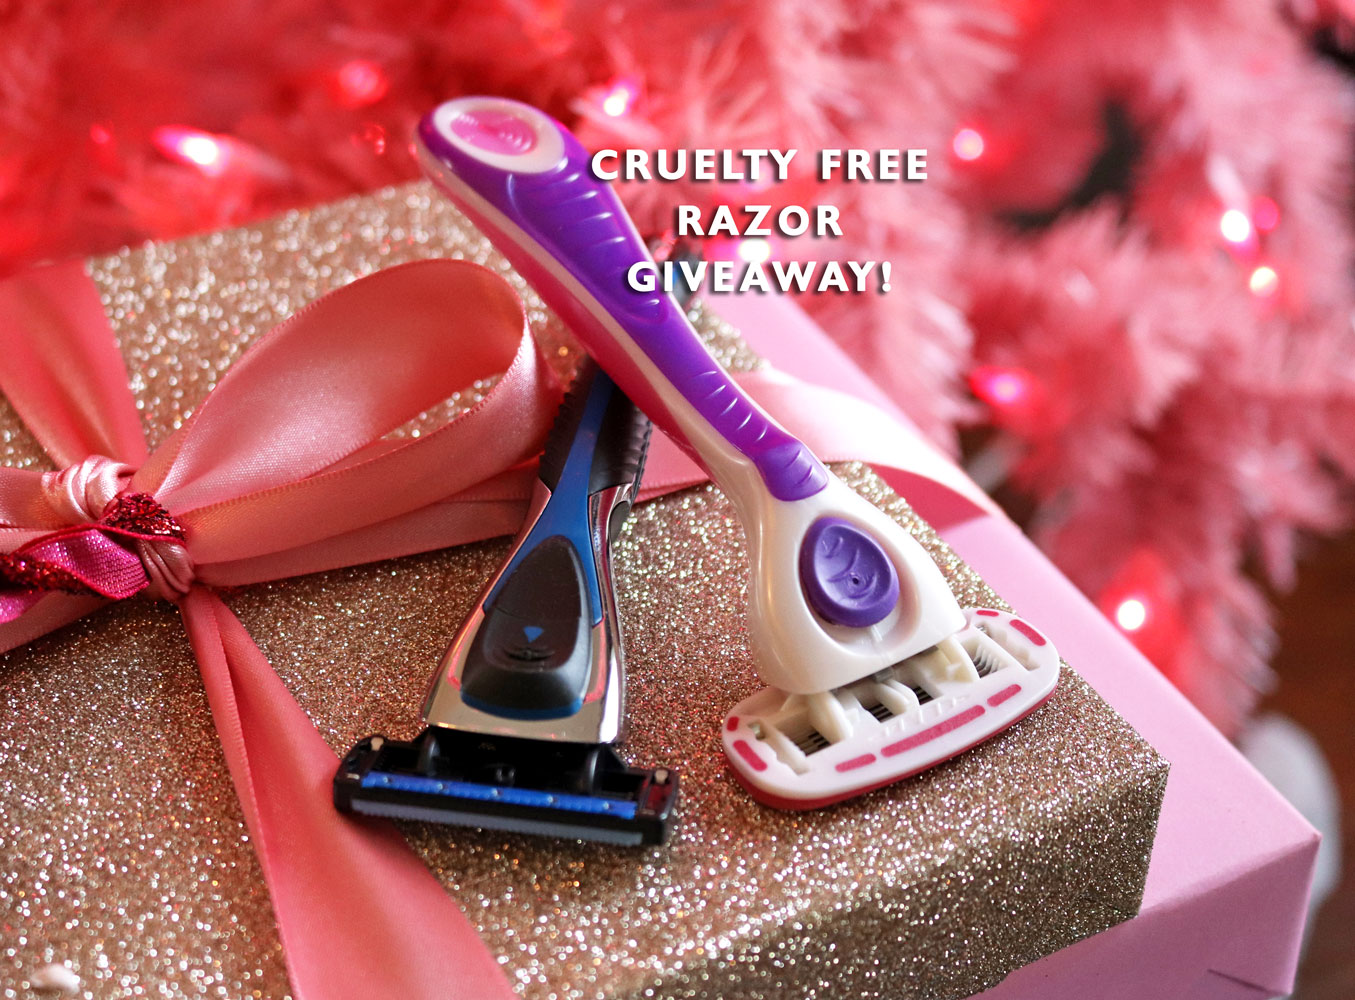 Vegan and Cruelty Free Razor Giveaway from Personna!